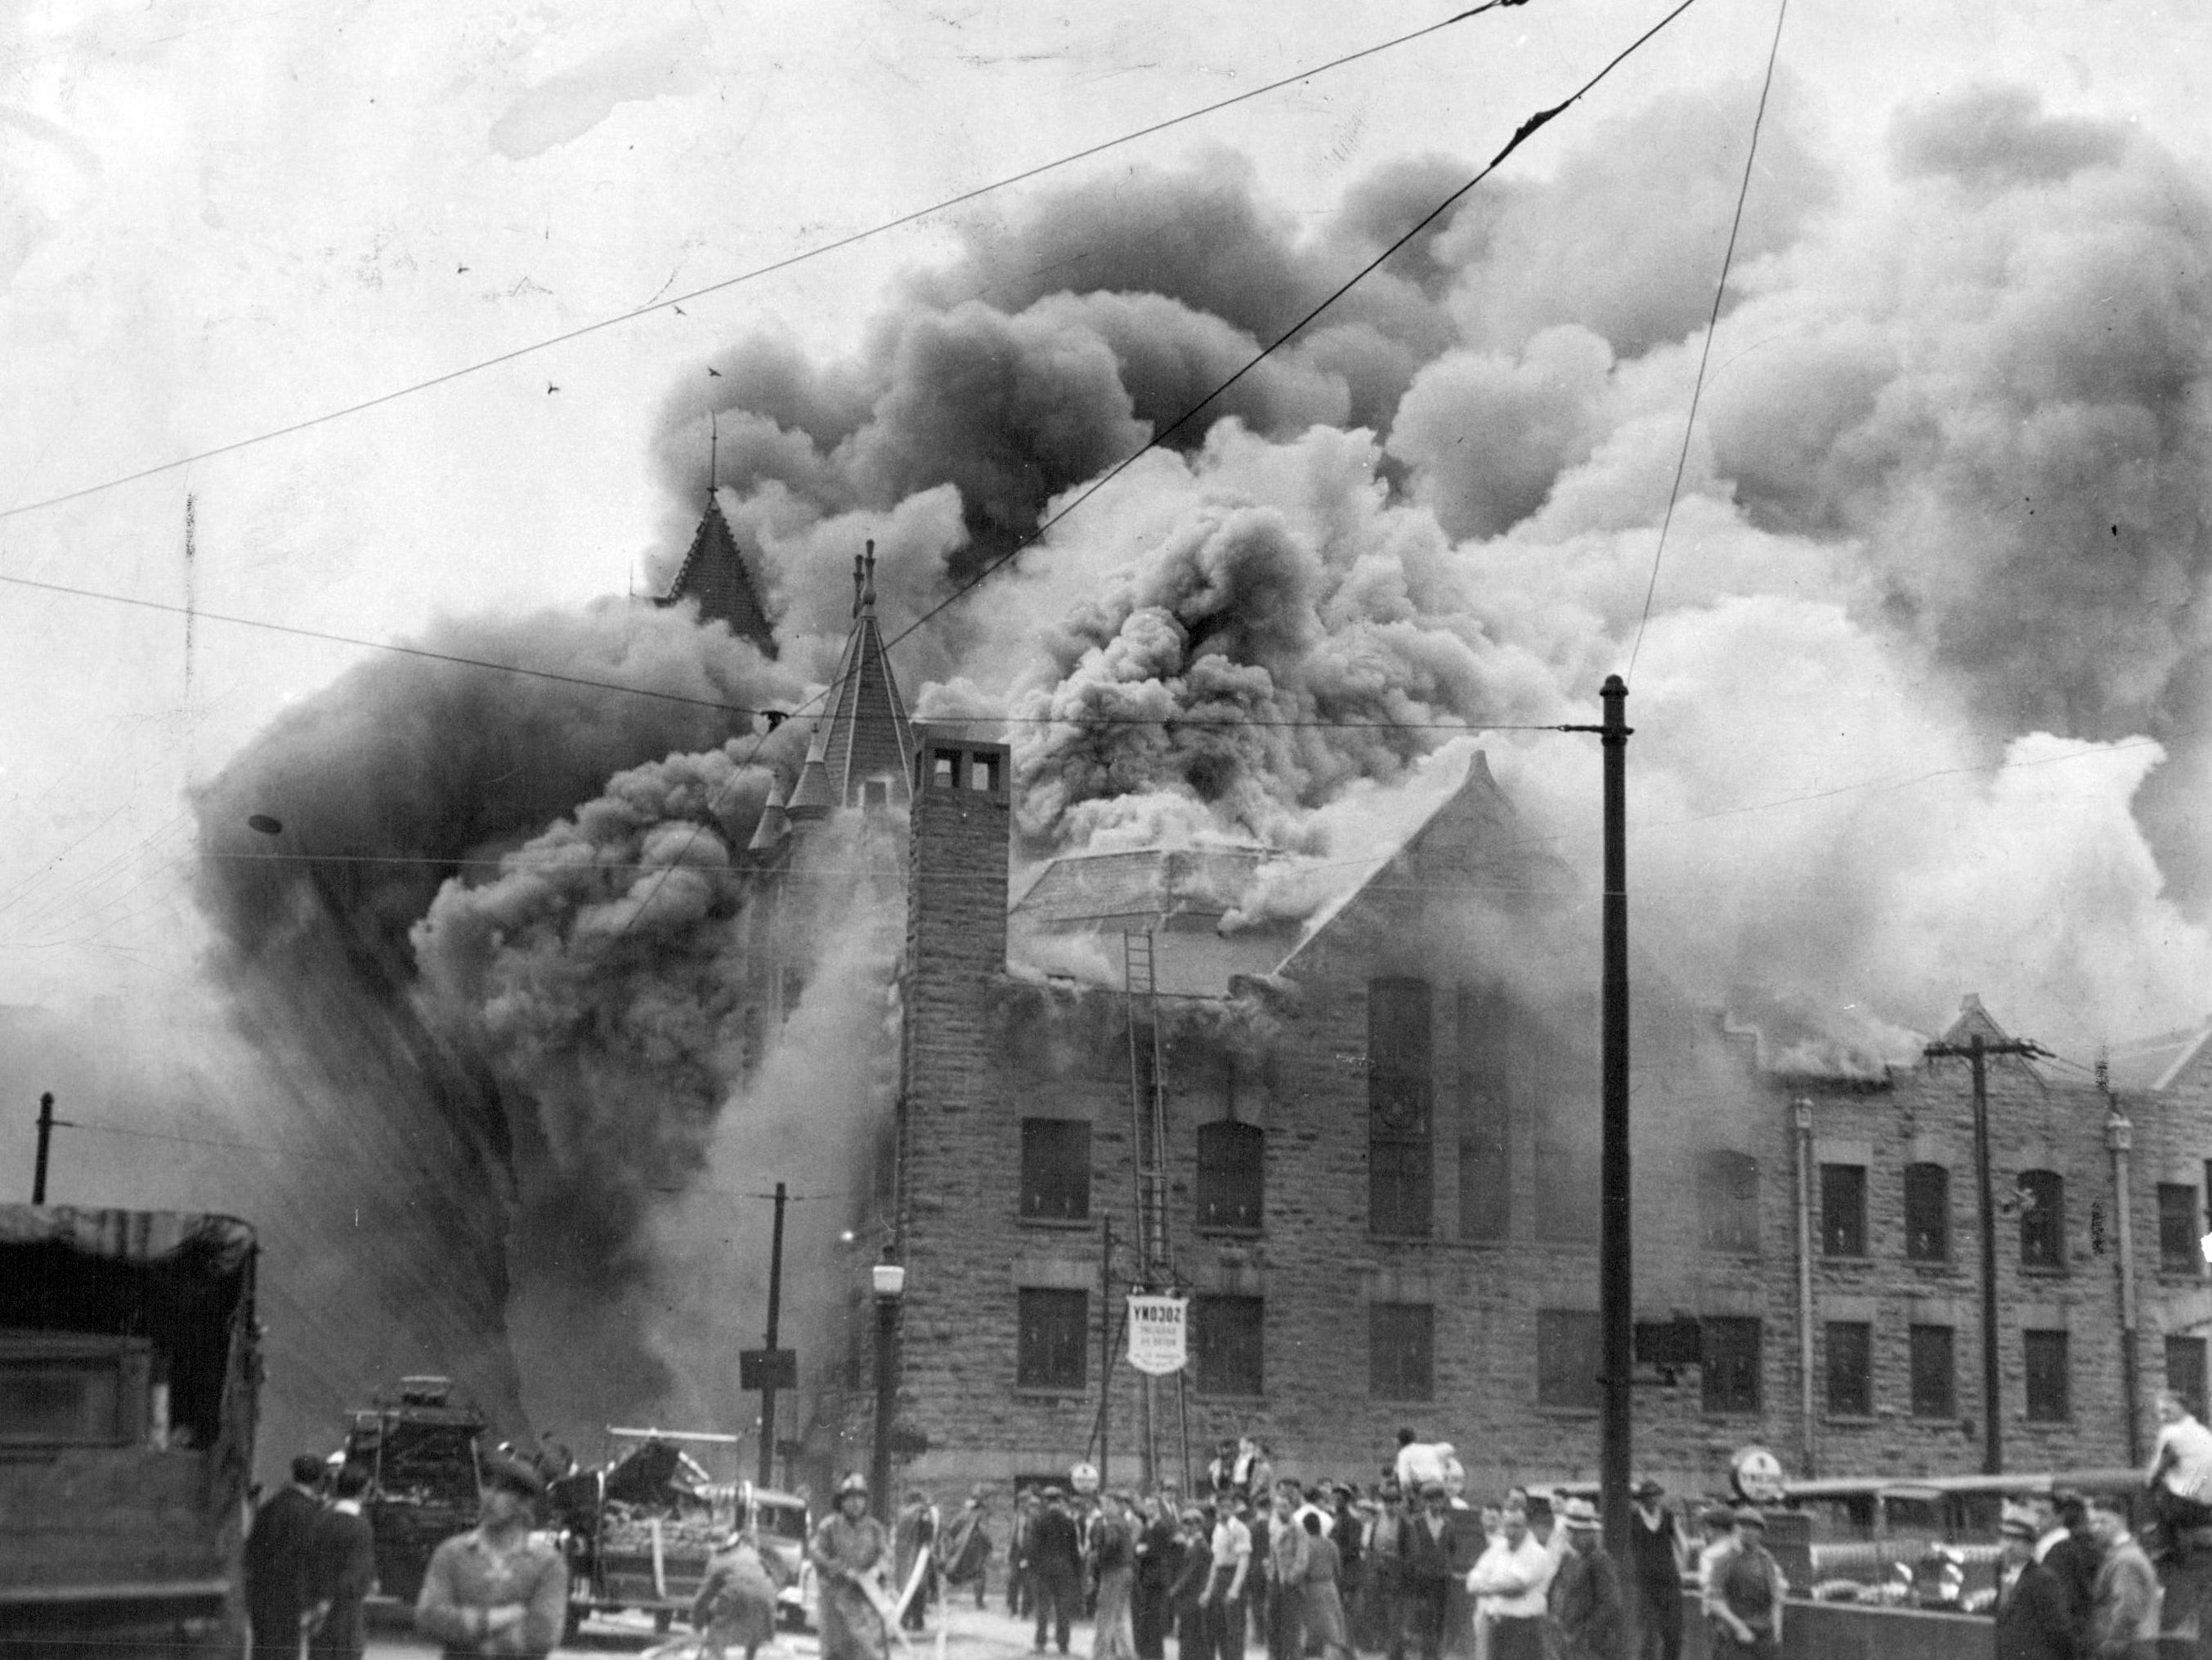 This 1933 fire at First Methodist Church, located at the corner of Fitzhugh and Church streets, injured 30 firefighters.